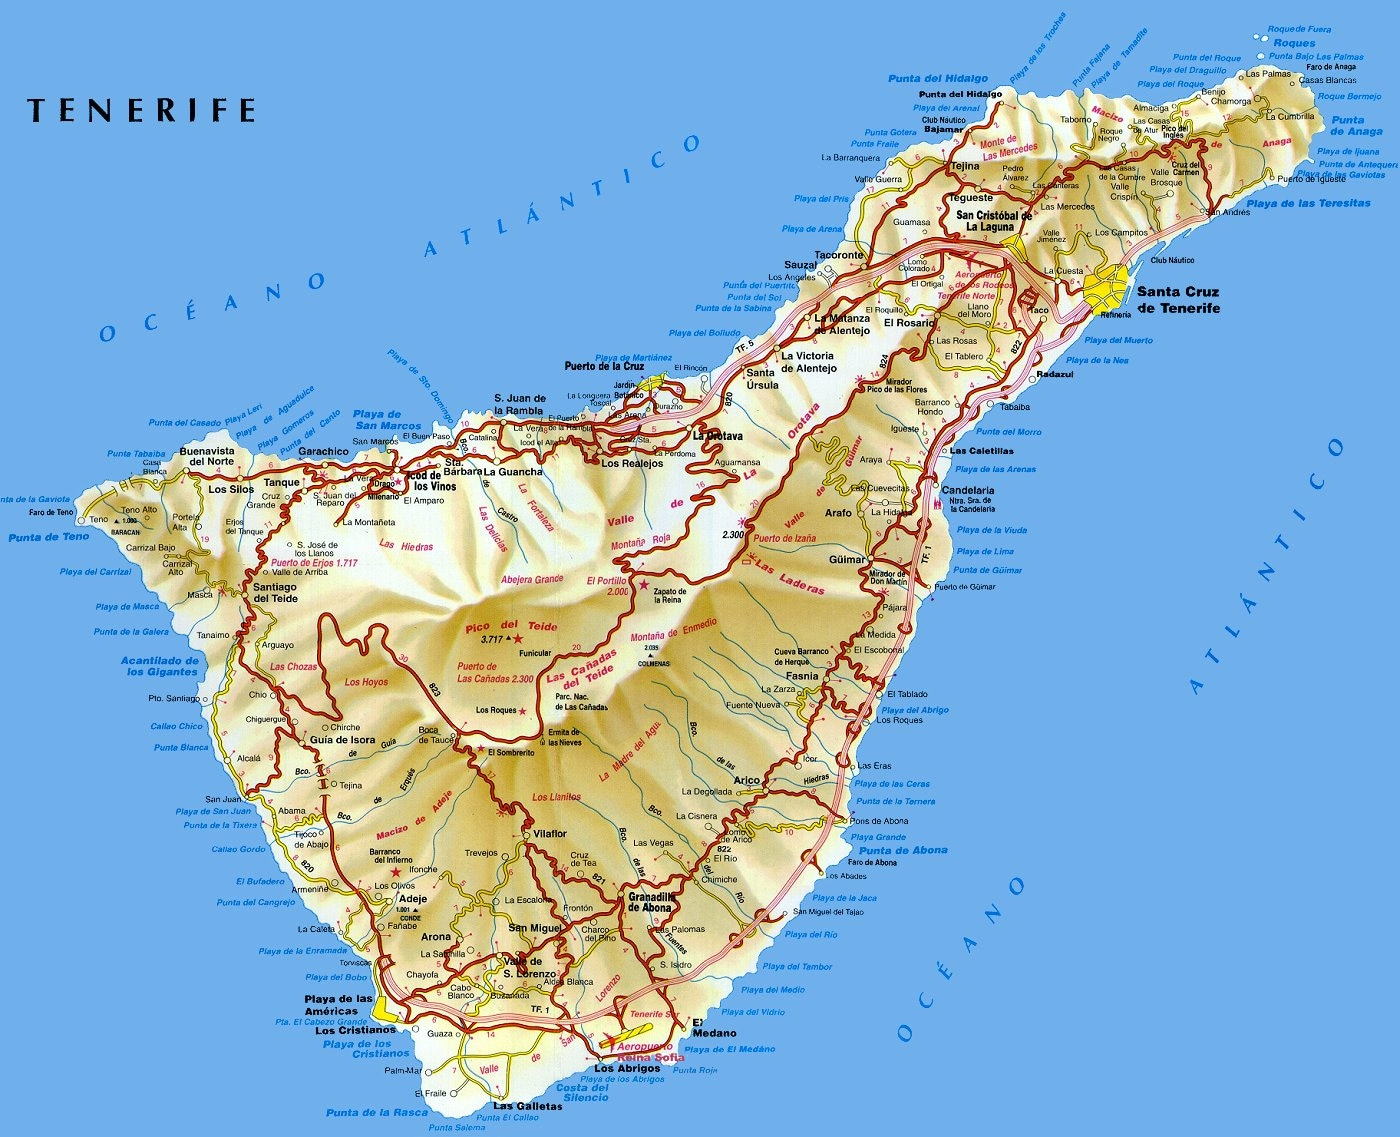 Map Of South West Coast Of Spain.Tenerife Map Tenerife Island Maps Map Of Tenerife